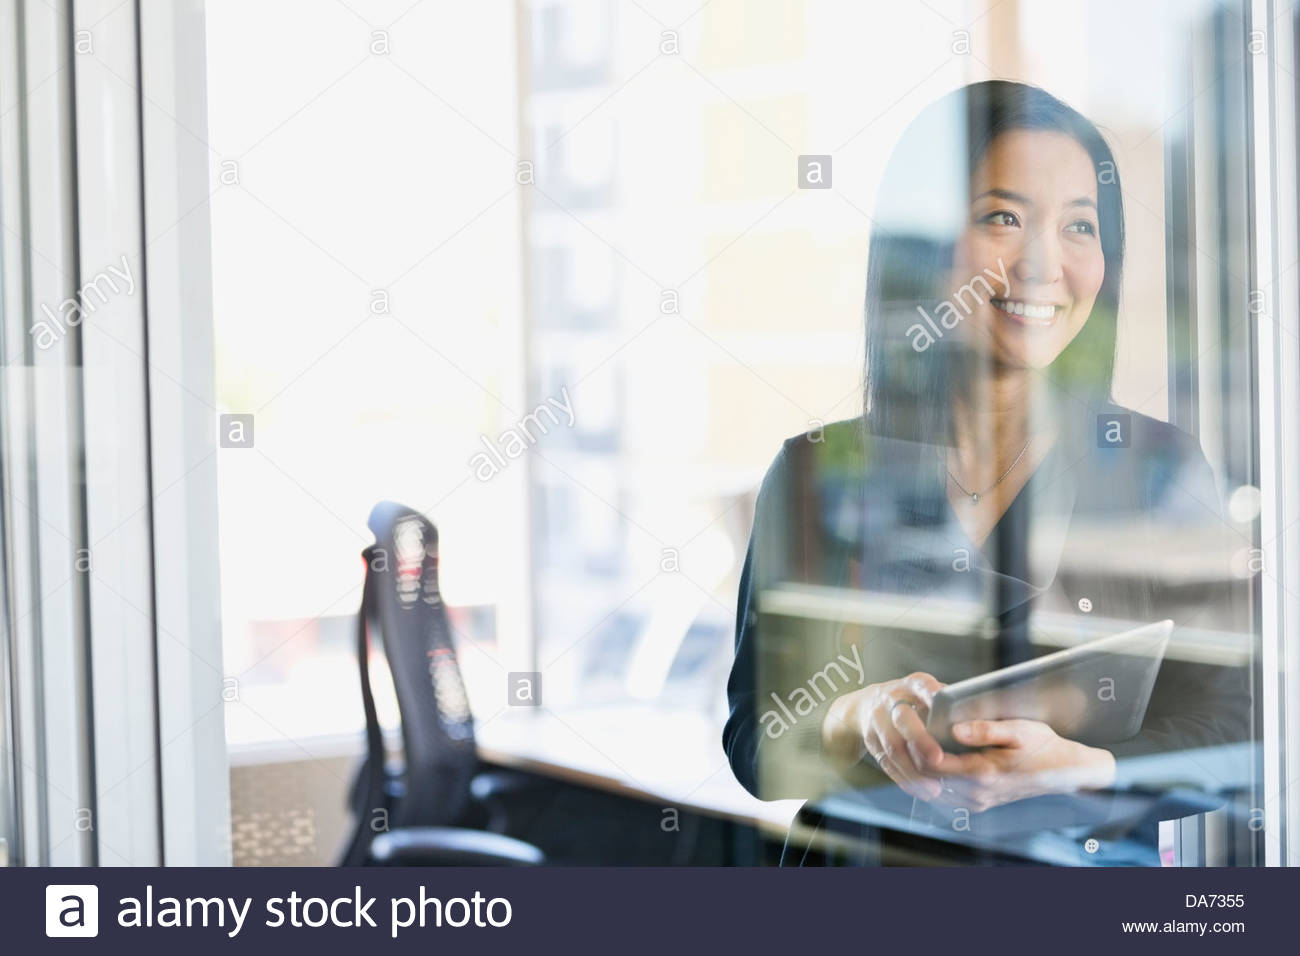 Smiling businesswoman with digital tablet in office - Stock Image